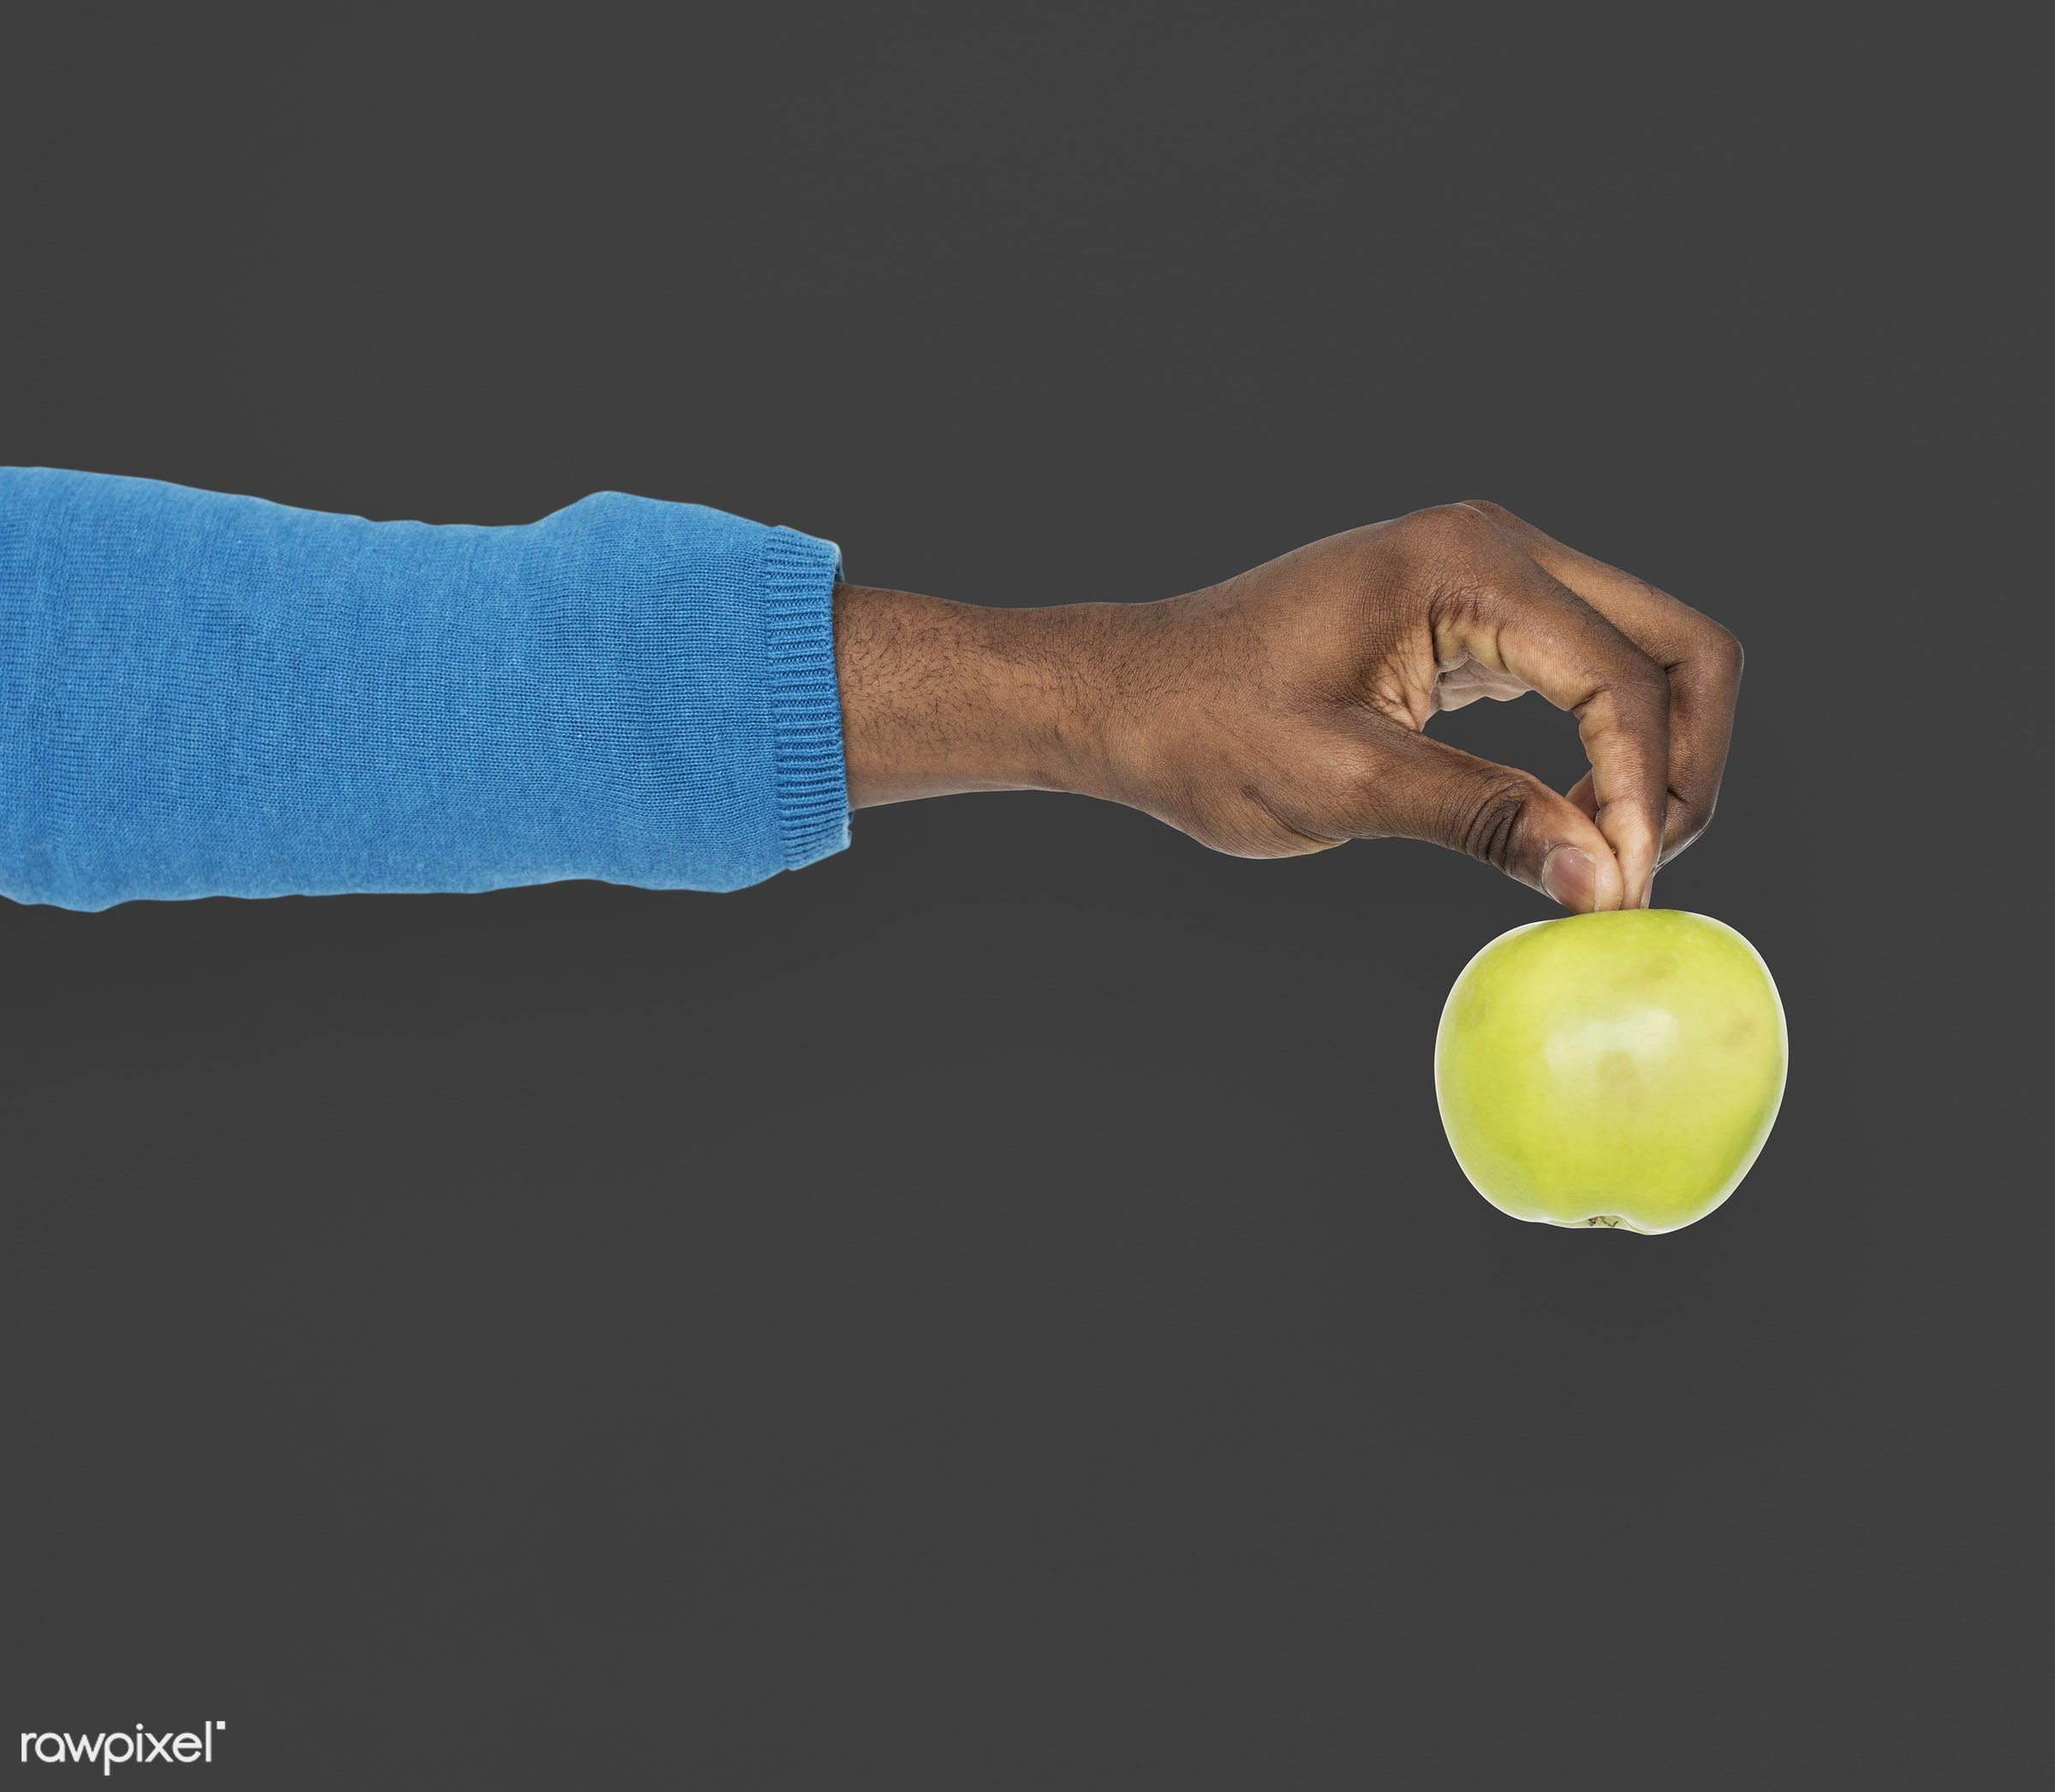 person, diet, race, hand, nature, wellness, lifestyle, showing, black, isolated, fruit, african descent, gesture, human,...